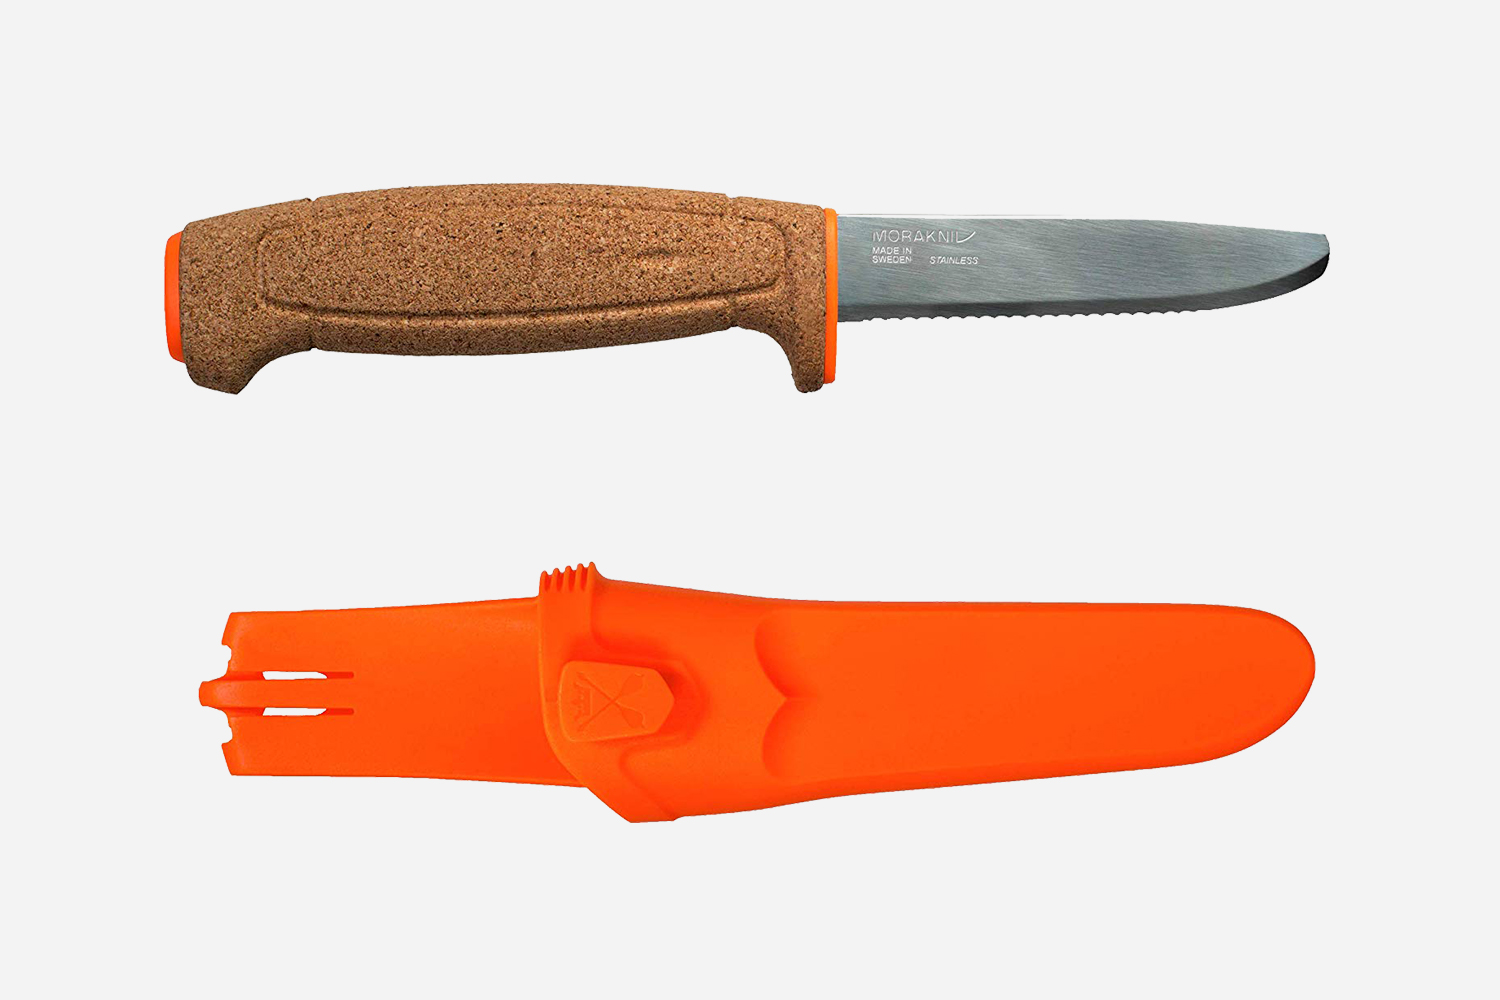 Morakniv Floating Fixed Blade Stainless Steel Serrated Knife on Amazon